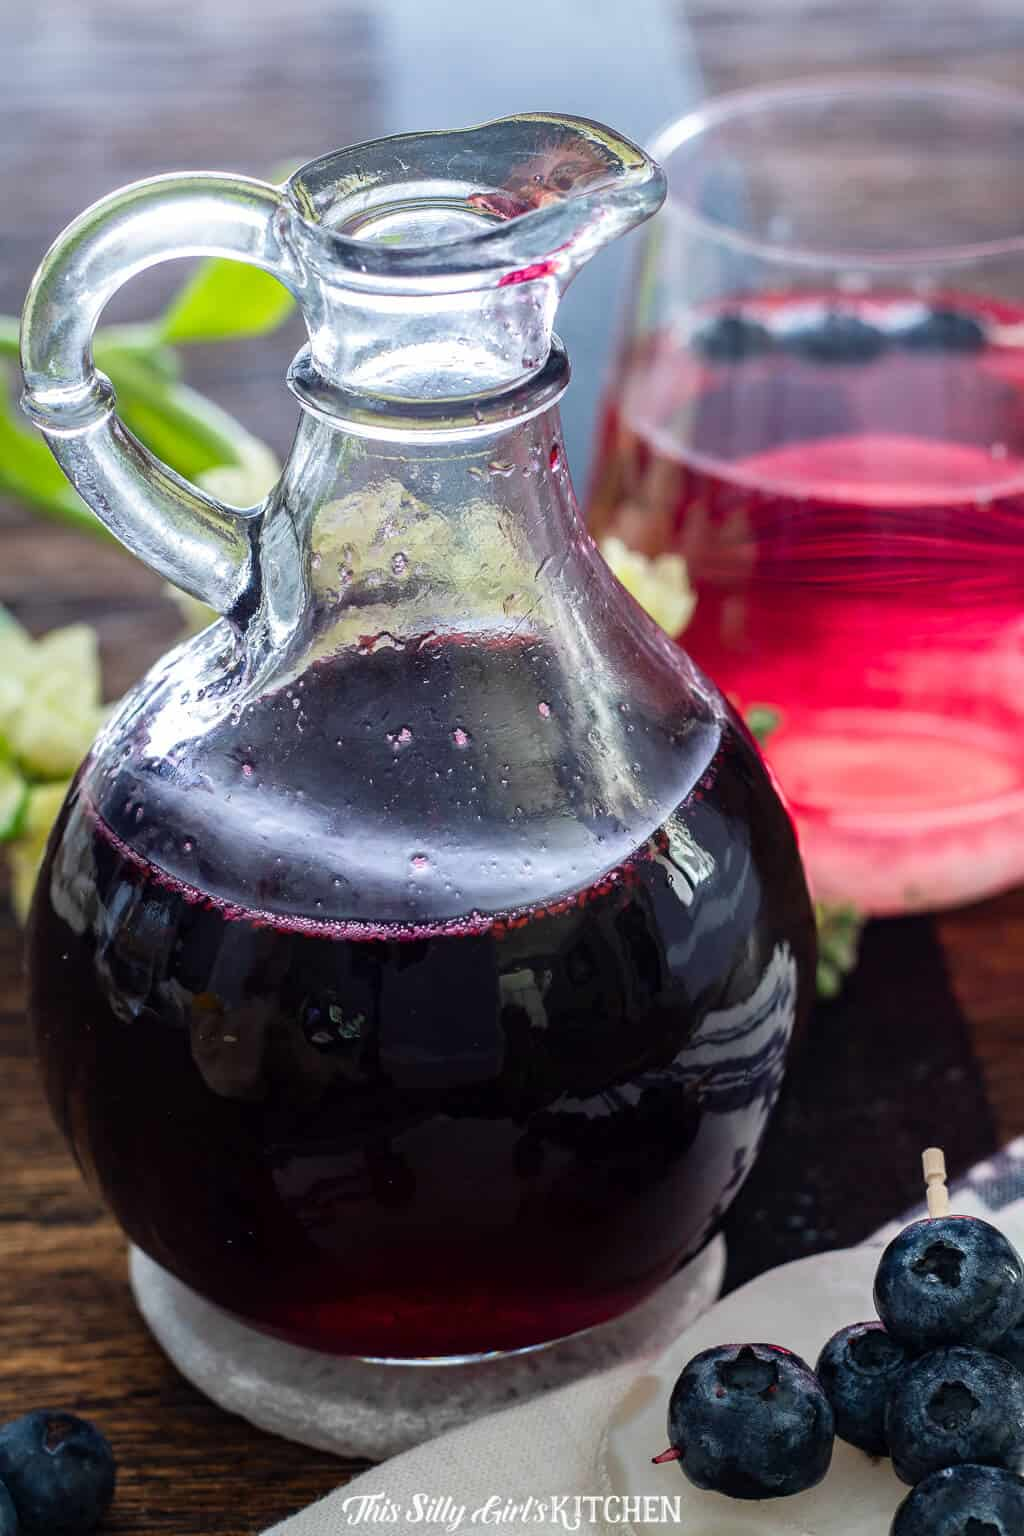 Blueberry simple syrup is made with just three simple ingredients. #recipe from thissillygirlskitchen.com #blueberry #simplesyrup #blueberrysimplesyrup #blueberrysyrup